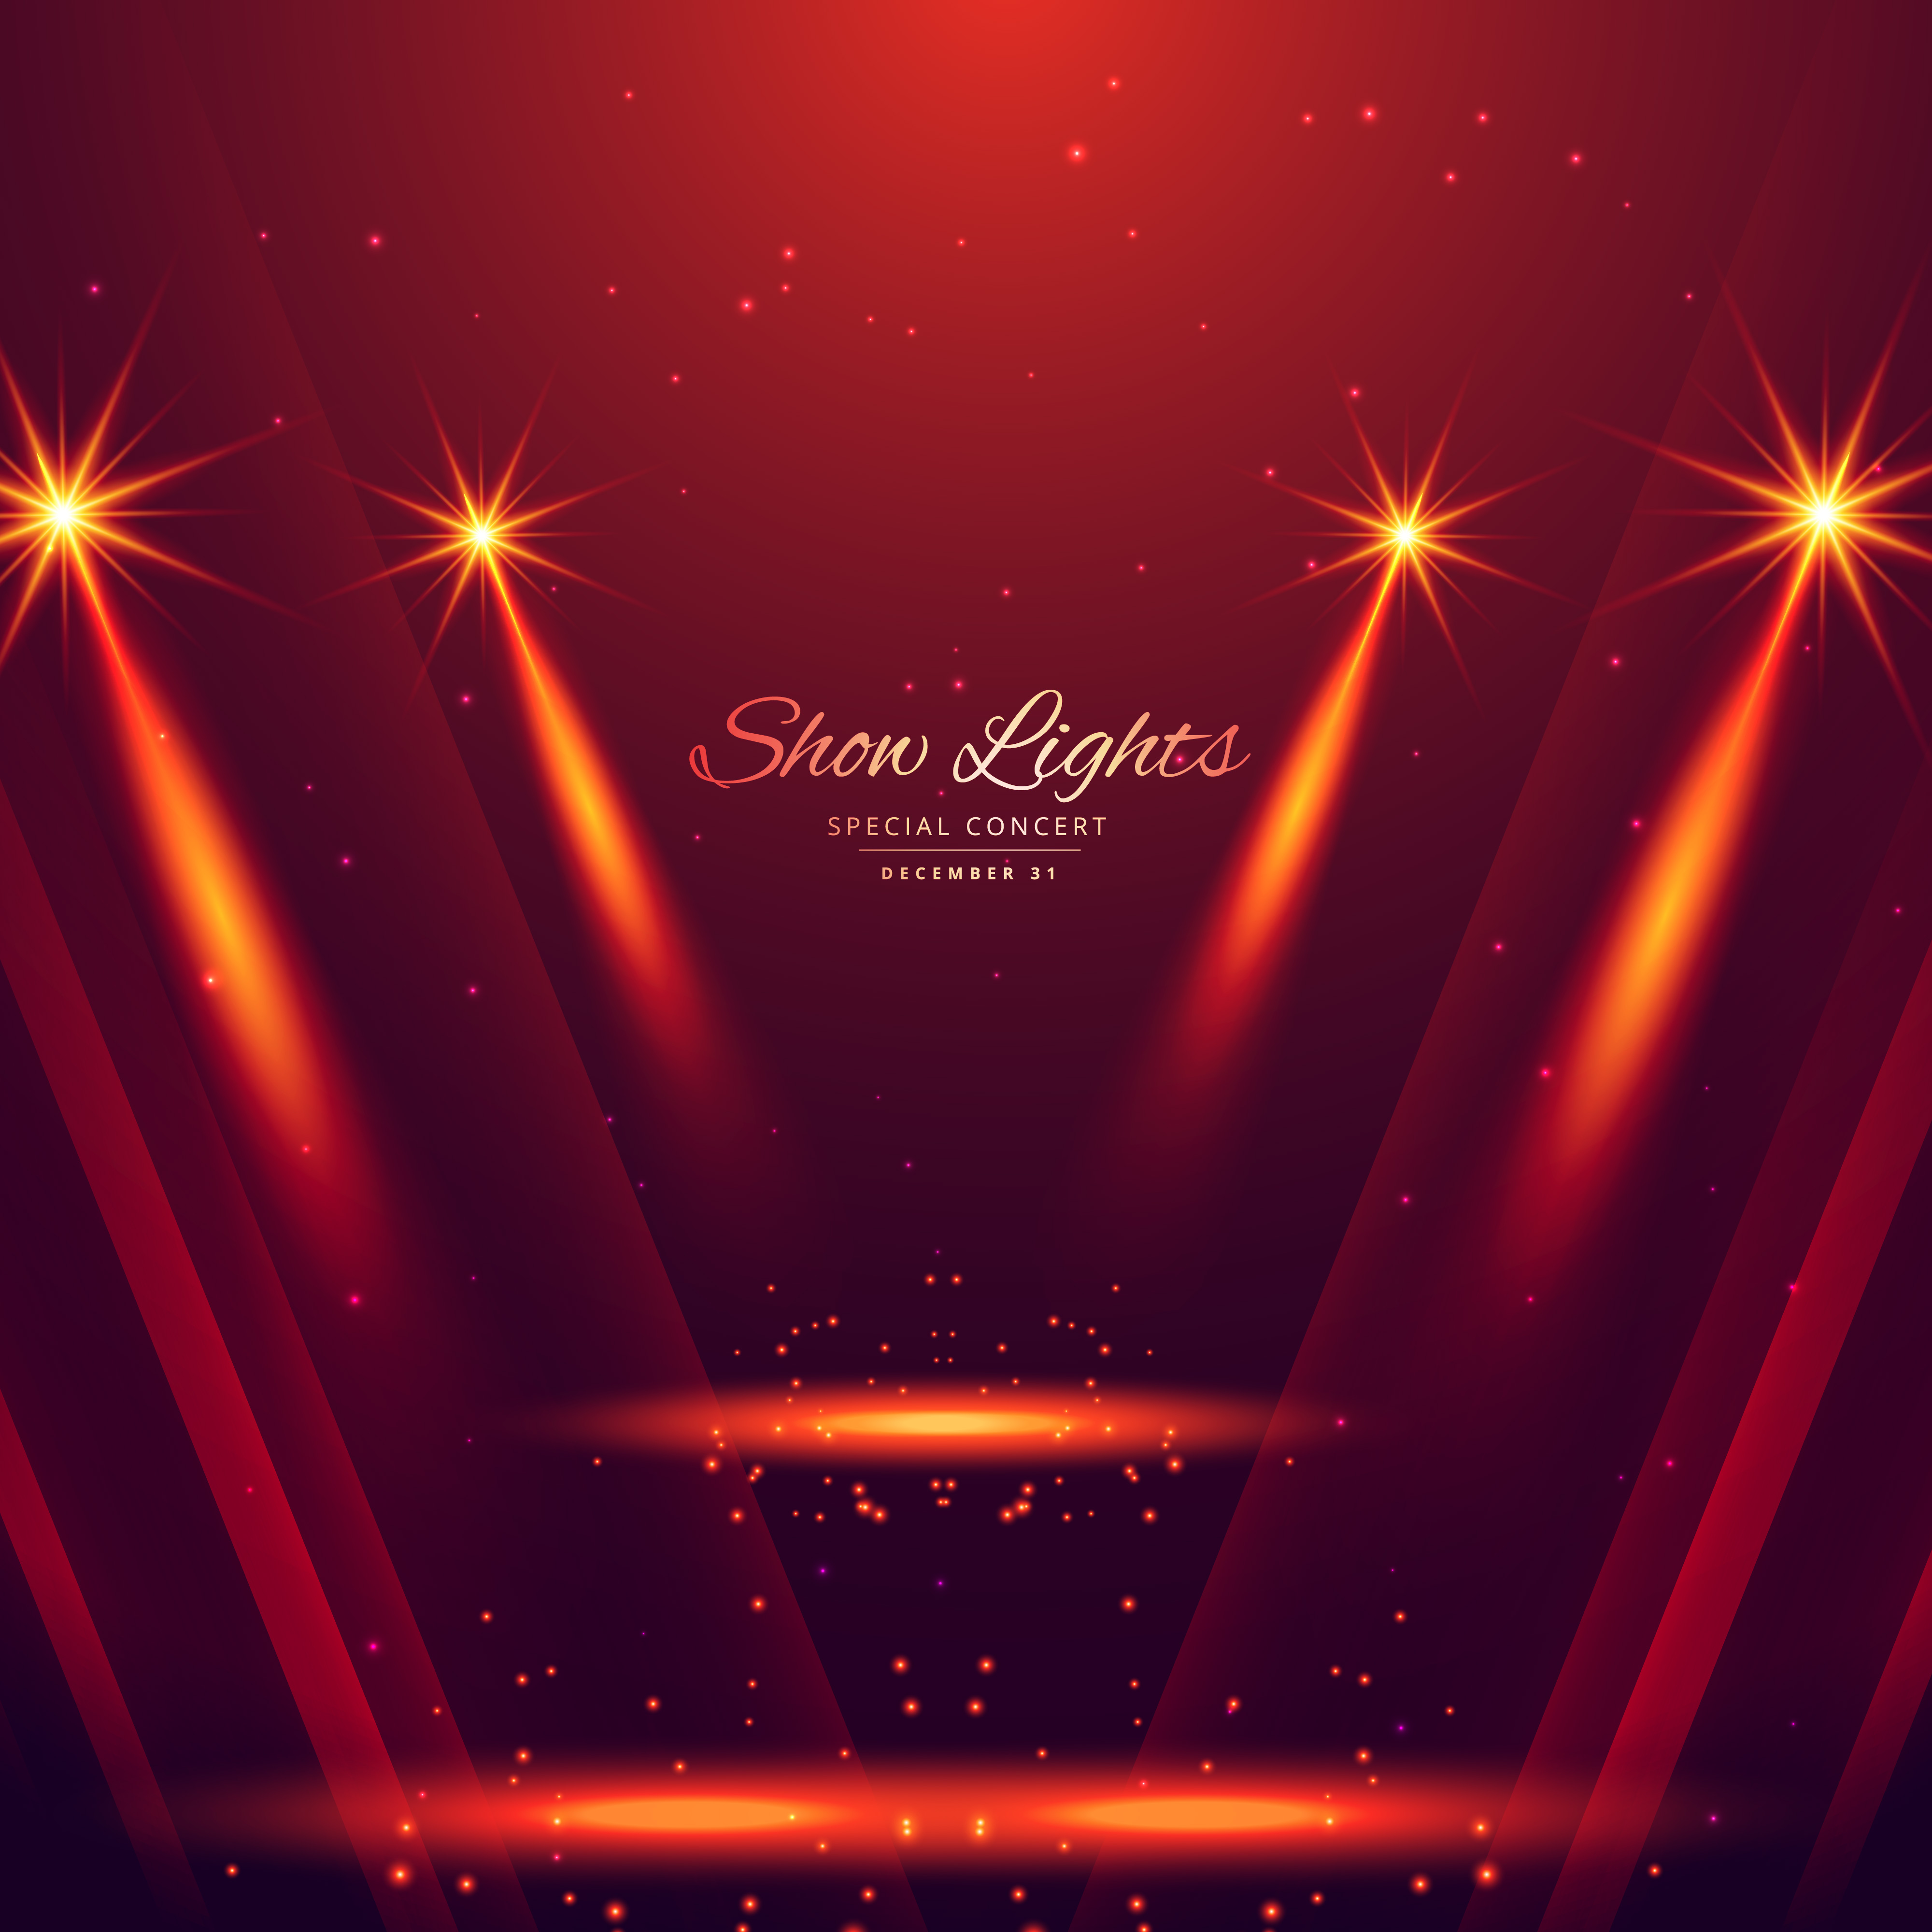 Spot Lights On Red Background Download Free Vector Art